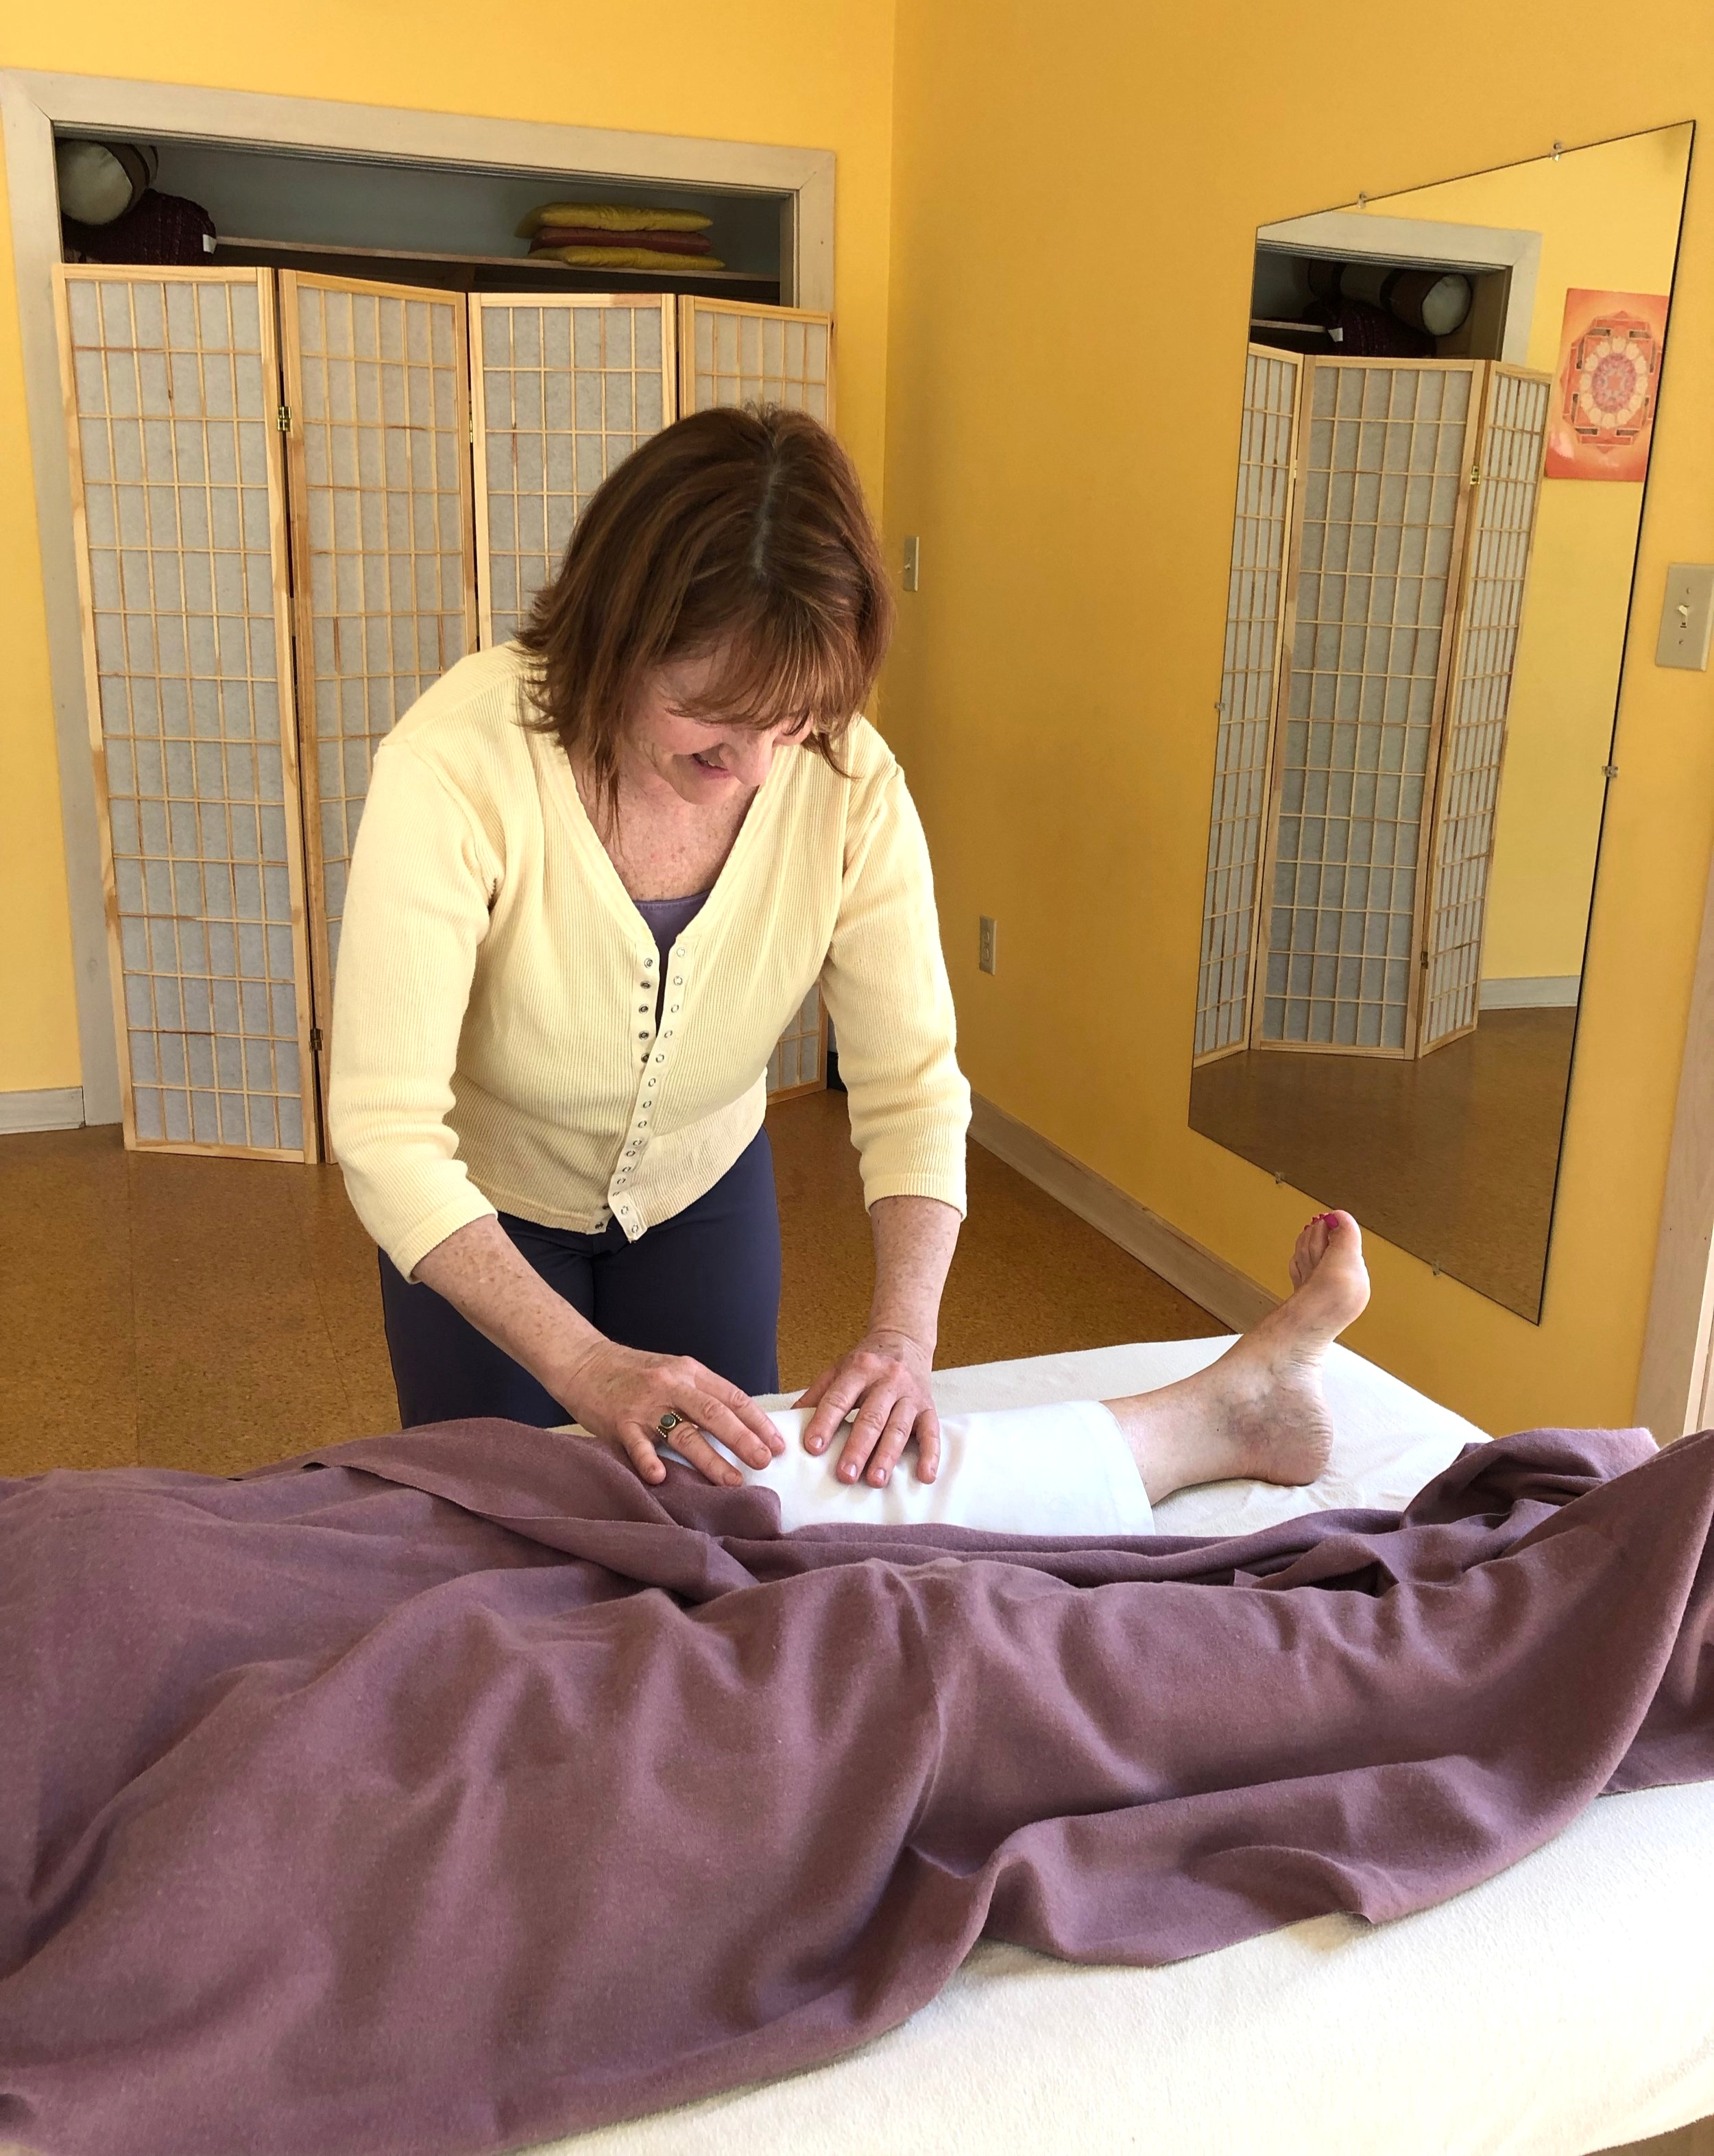 Working with Darcy - We begin by assessing your needs through an exploration of your history, previous treatments, and most pressing concerns. Together we develop a plan utilizing the various approaches and modalities that will work best for you, such as Bowenwork, Yoga Therapy or MSTR.As your practitioner I provide you with close, personal attention every step of the way. Each session involves moment to moment assessment of your patterns of movement, patterns of compensation, limitations, bracing or gripping, breathing, strain, and more. Personalized coaching each step of the way - in language you can easily follow - helps you get the most from each session.The pace and frequency of your sessions is developed to fit into your schedule and needs. Get the support you need, and see results with one-one-one support.Private sessions have the potential for fastest progress.